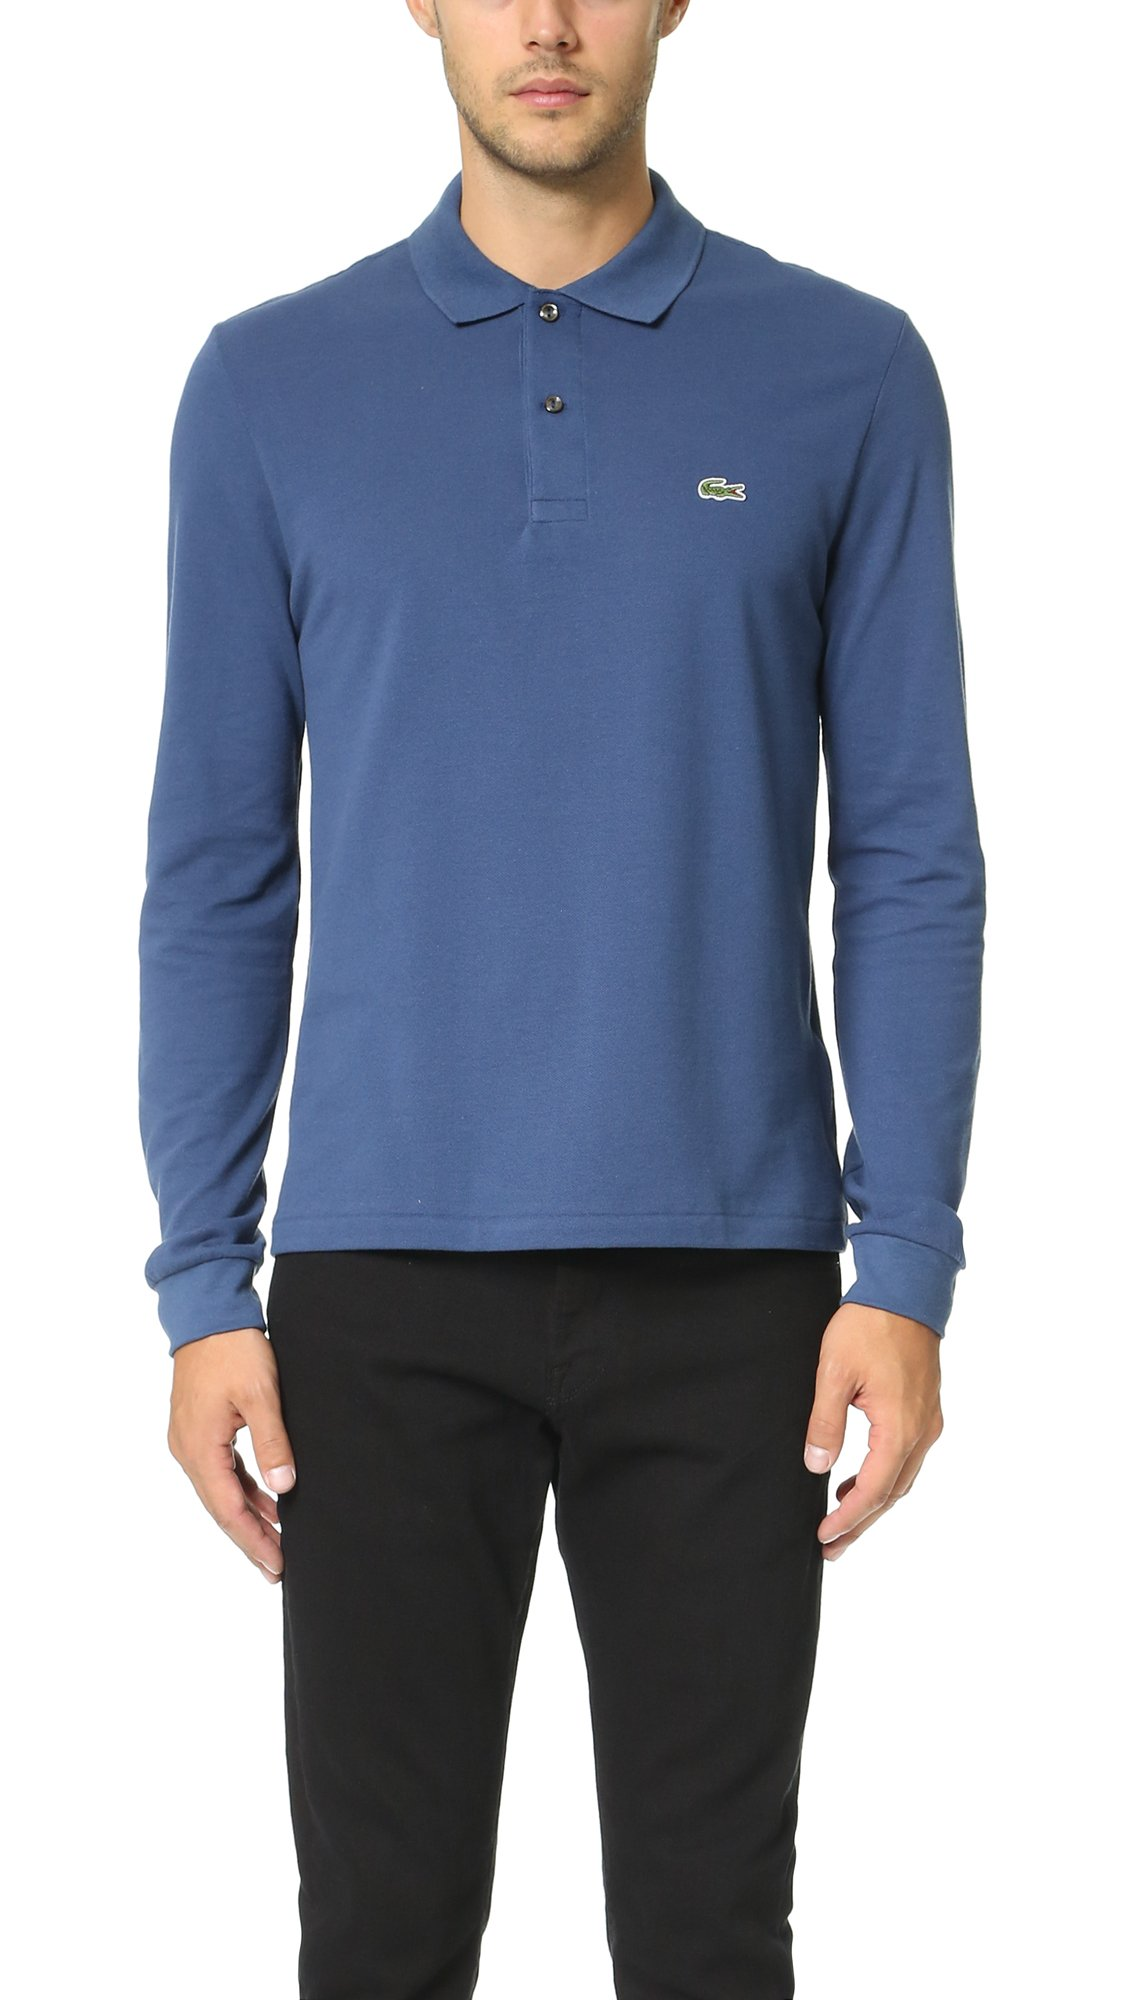 Lacoste Men's Long Sleeve Classic Polo Shirt, Navy, X-Large